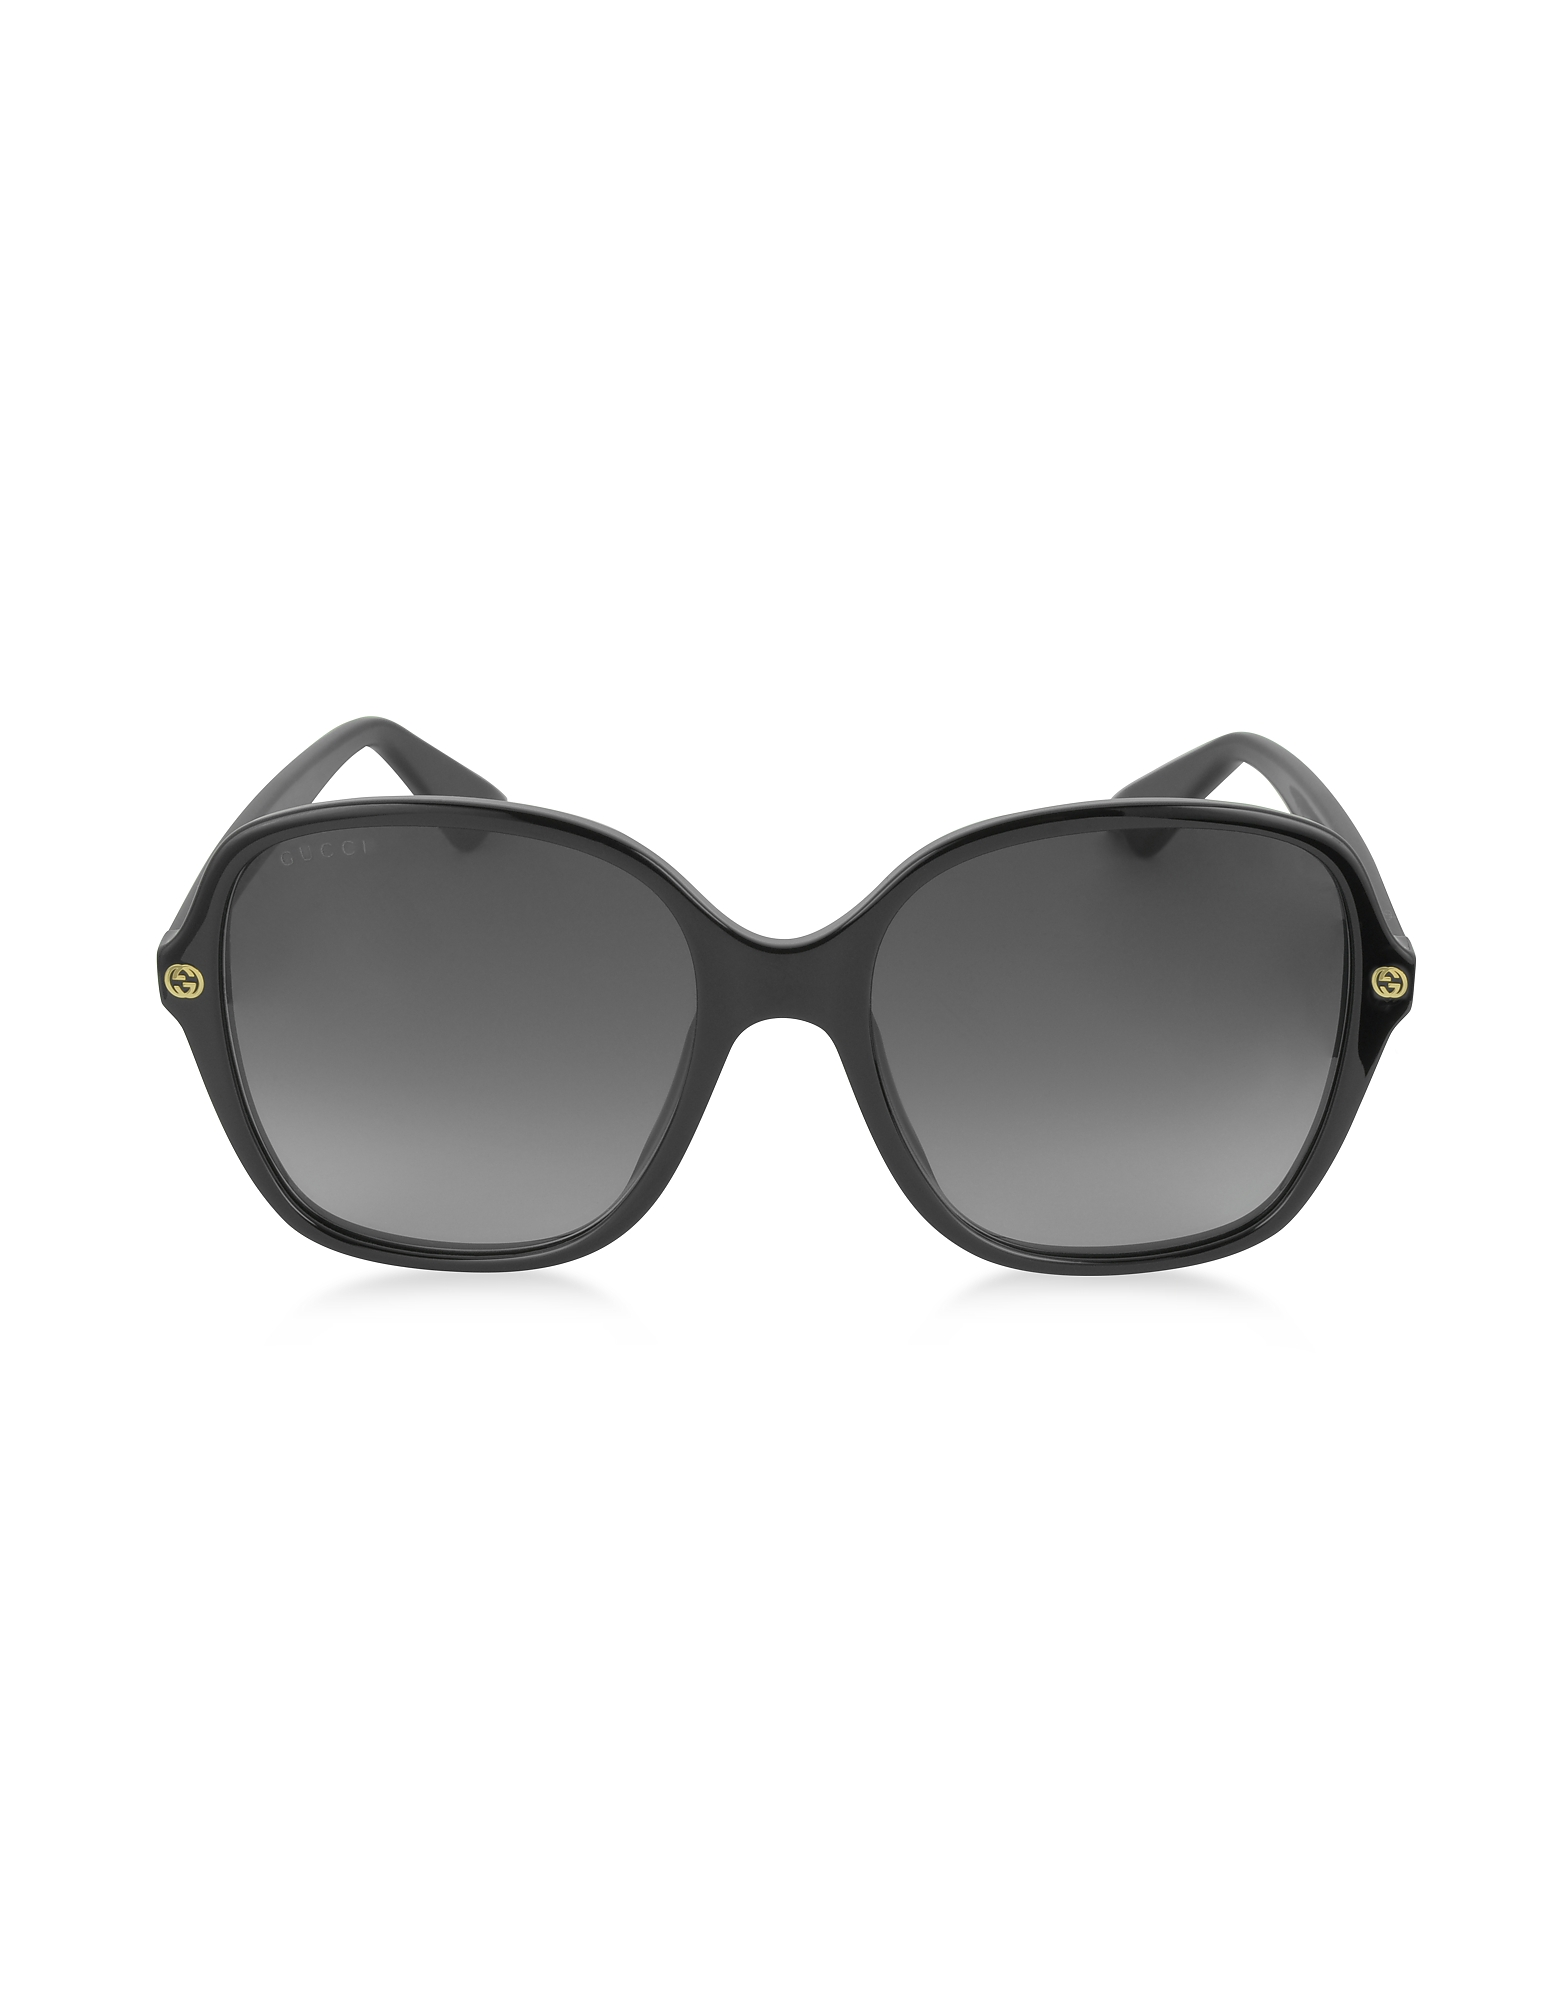 Gucci Sunglasses, GG0092S Acetate Square Women's Sunglasses